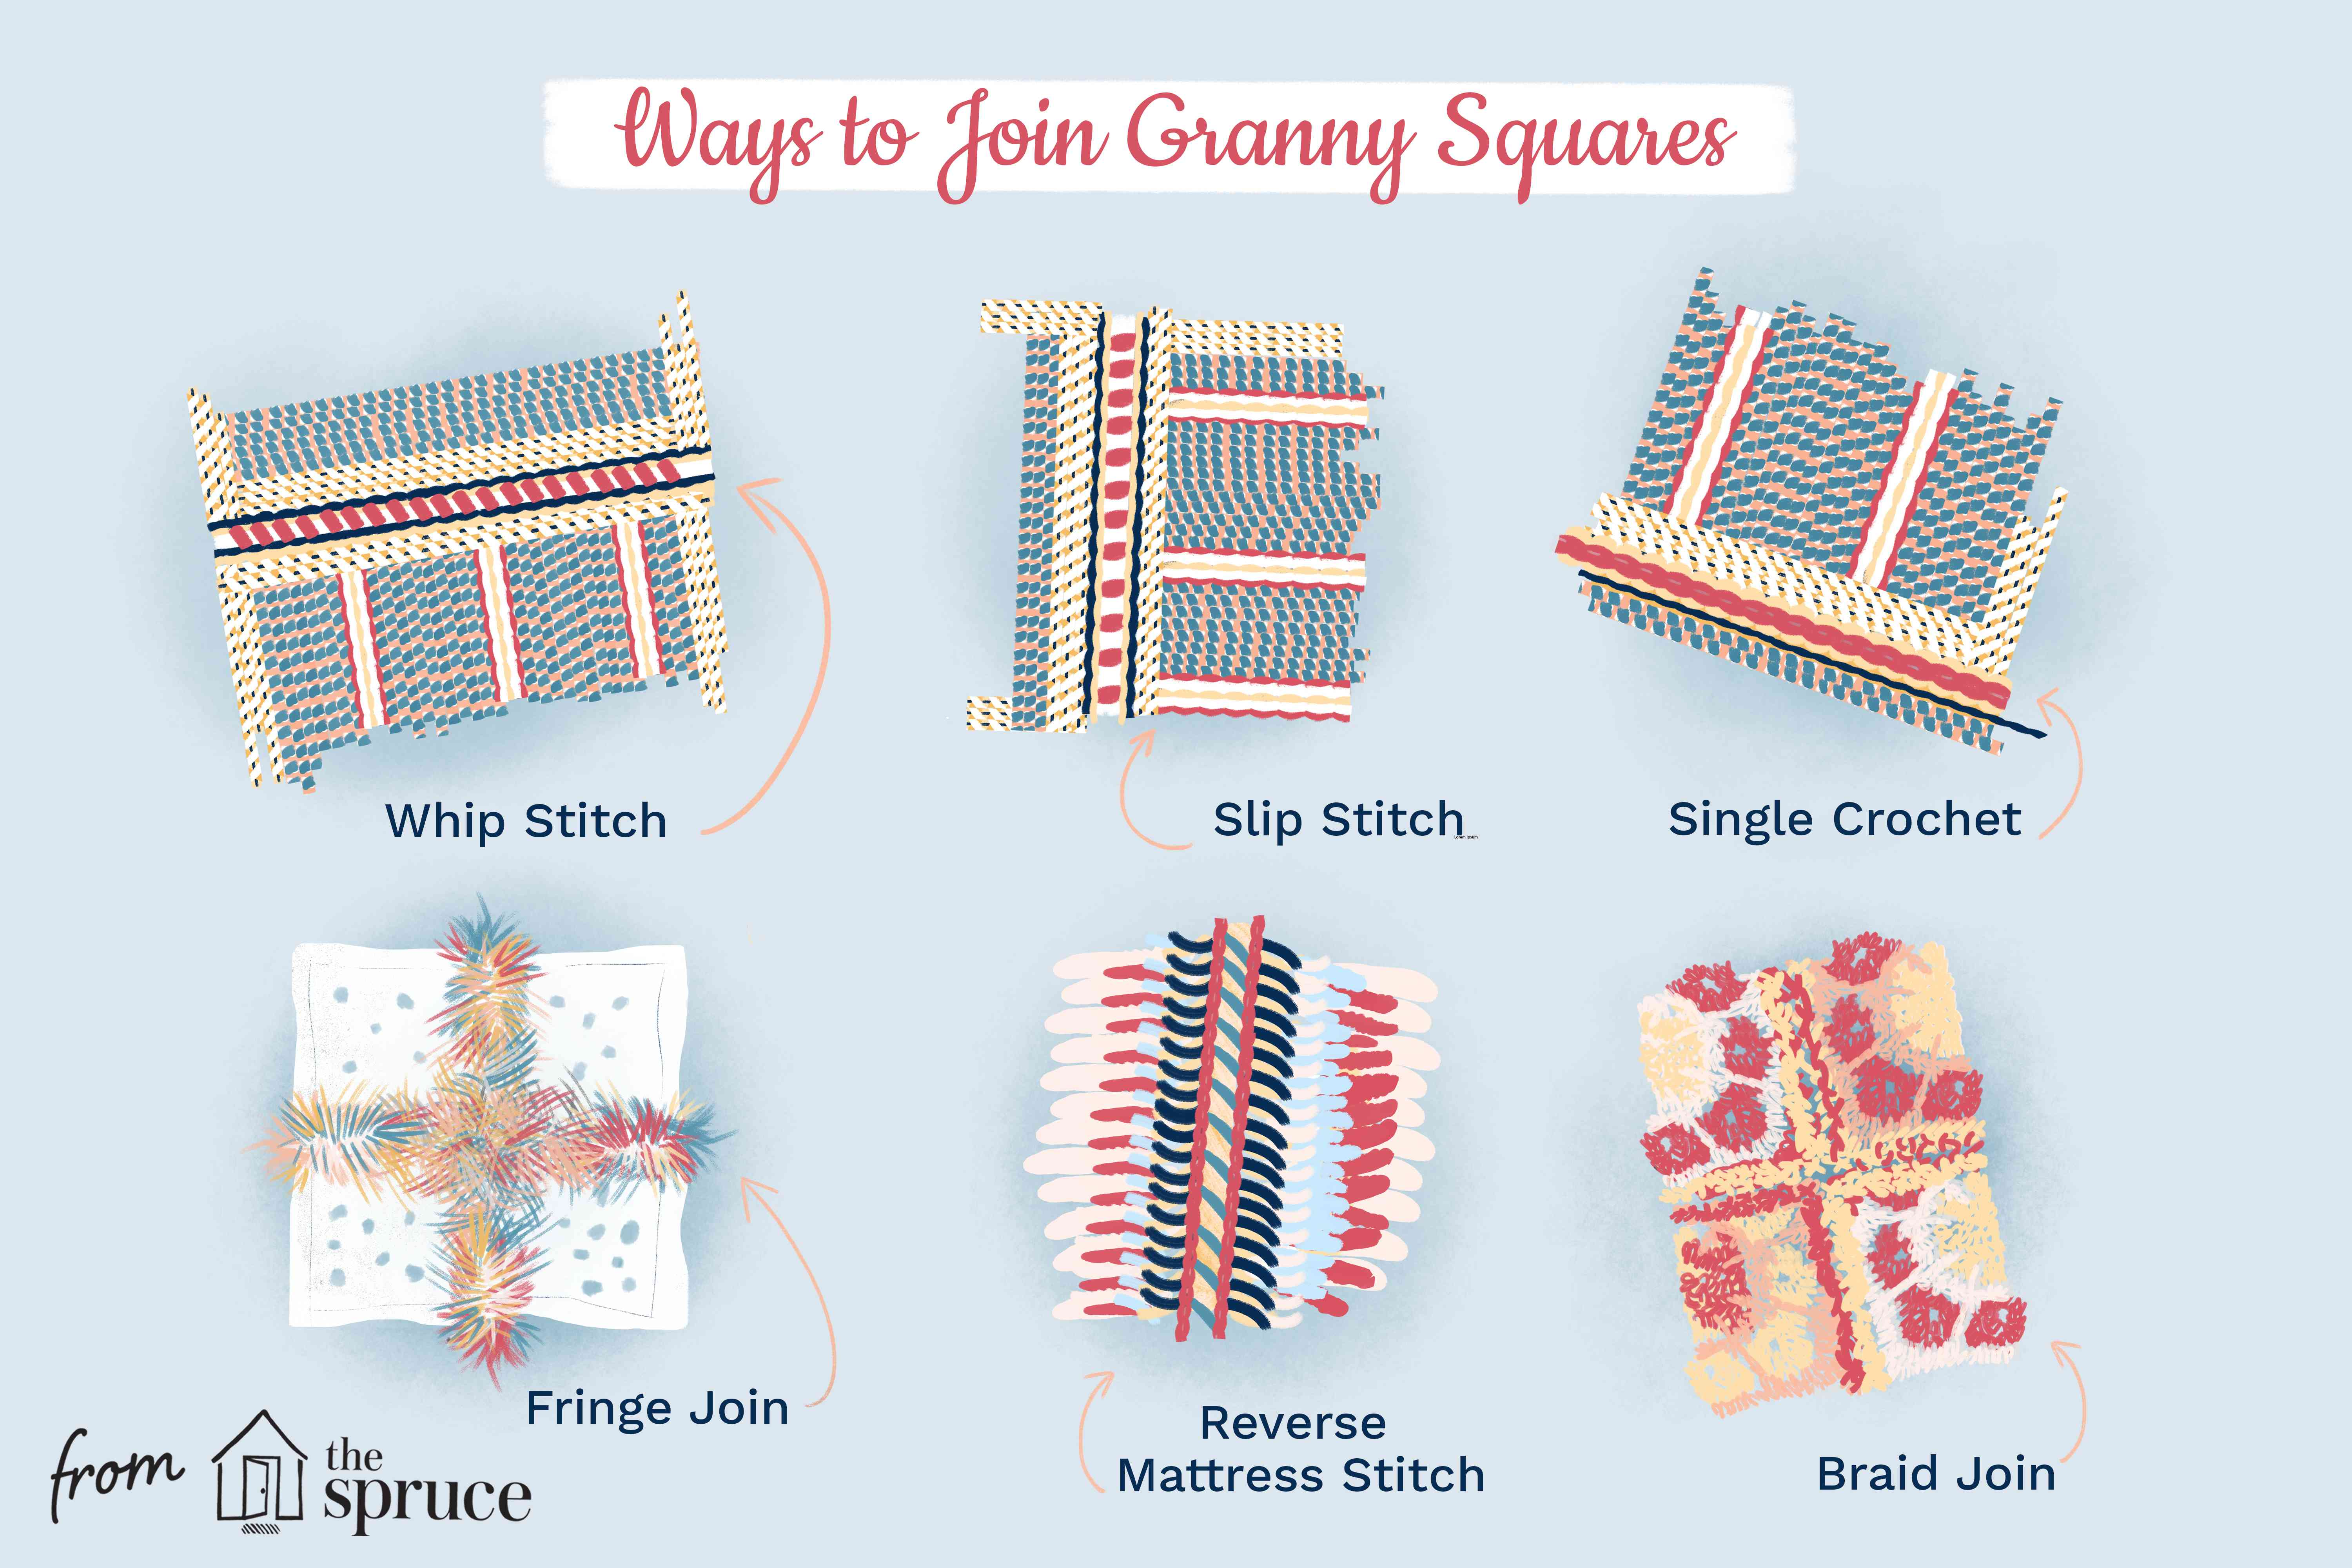 Illustration of ways to join granny squares.